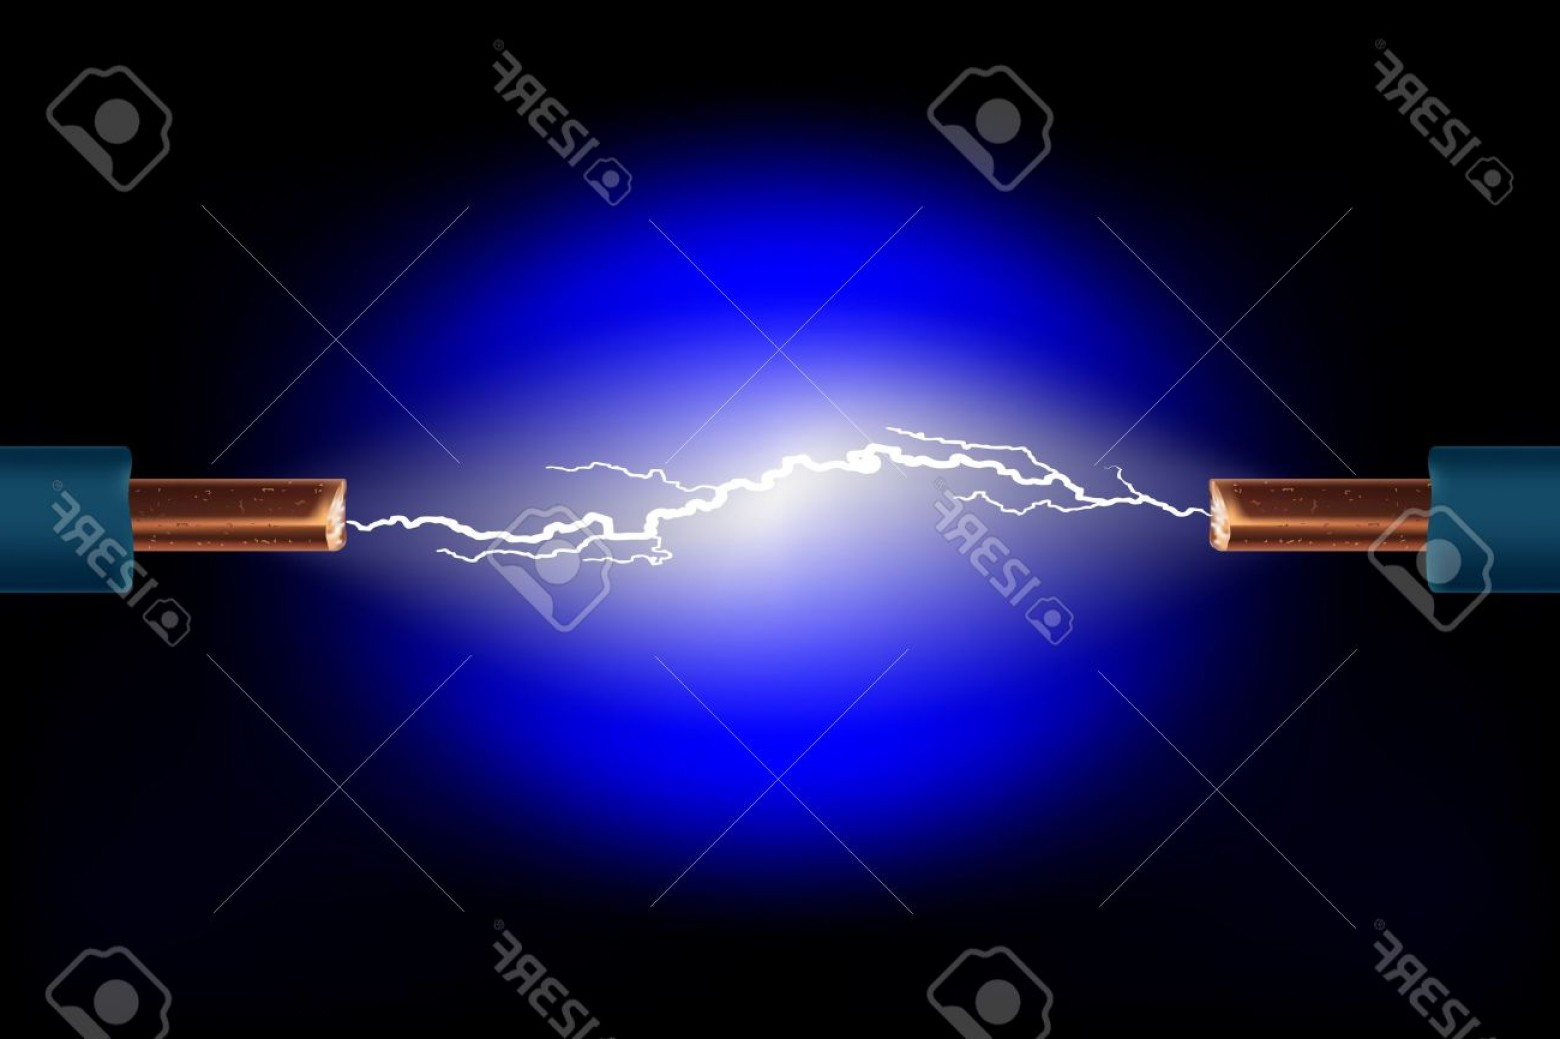 Short Cord Vector: Photoelectric Cable With Sparks On A Black Background Vector